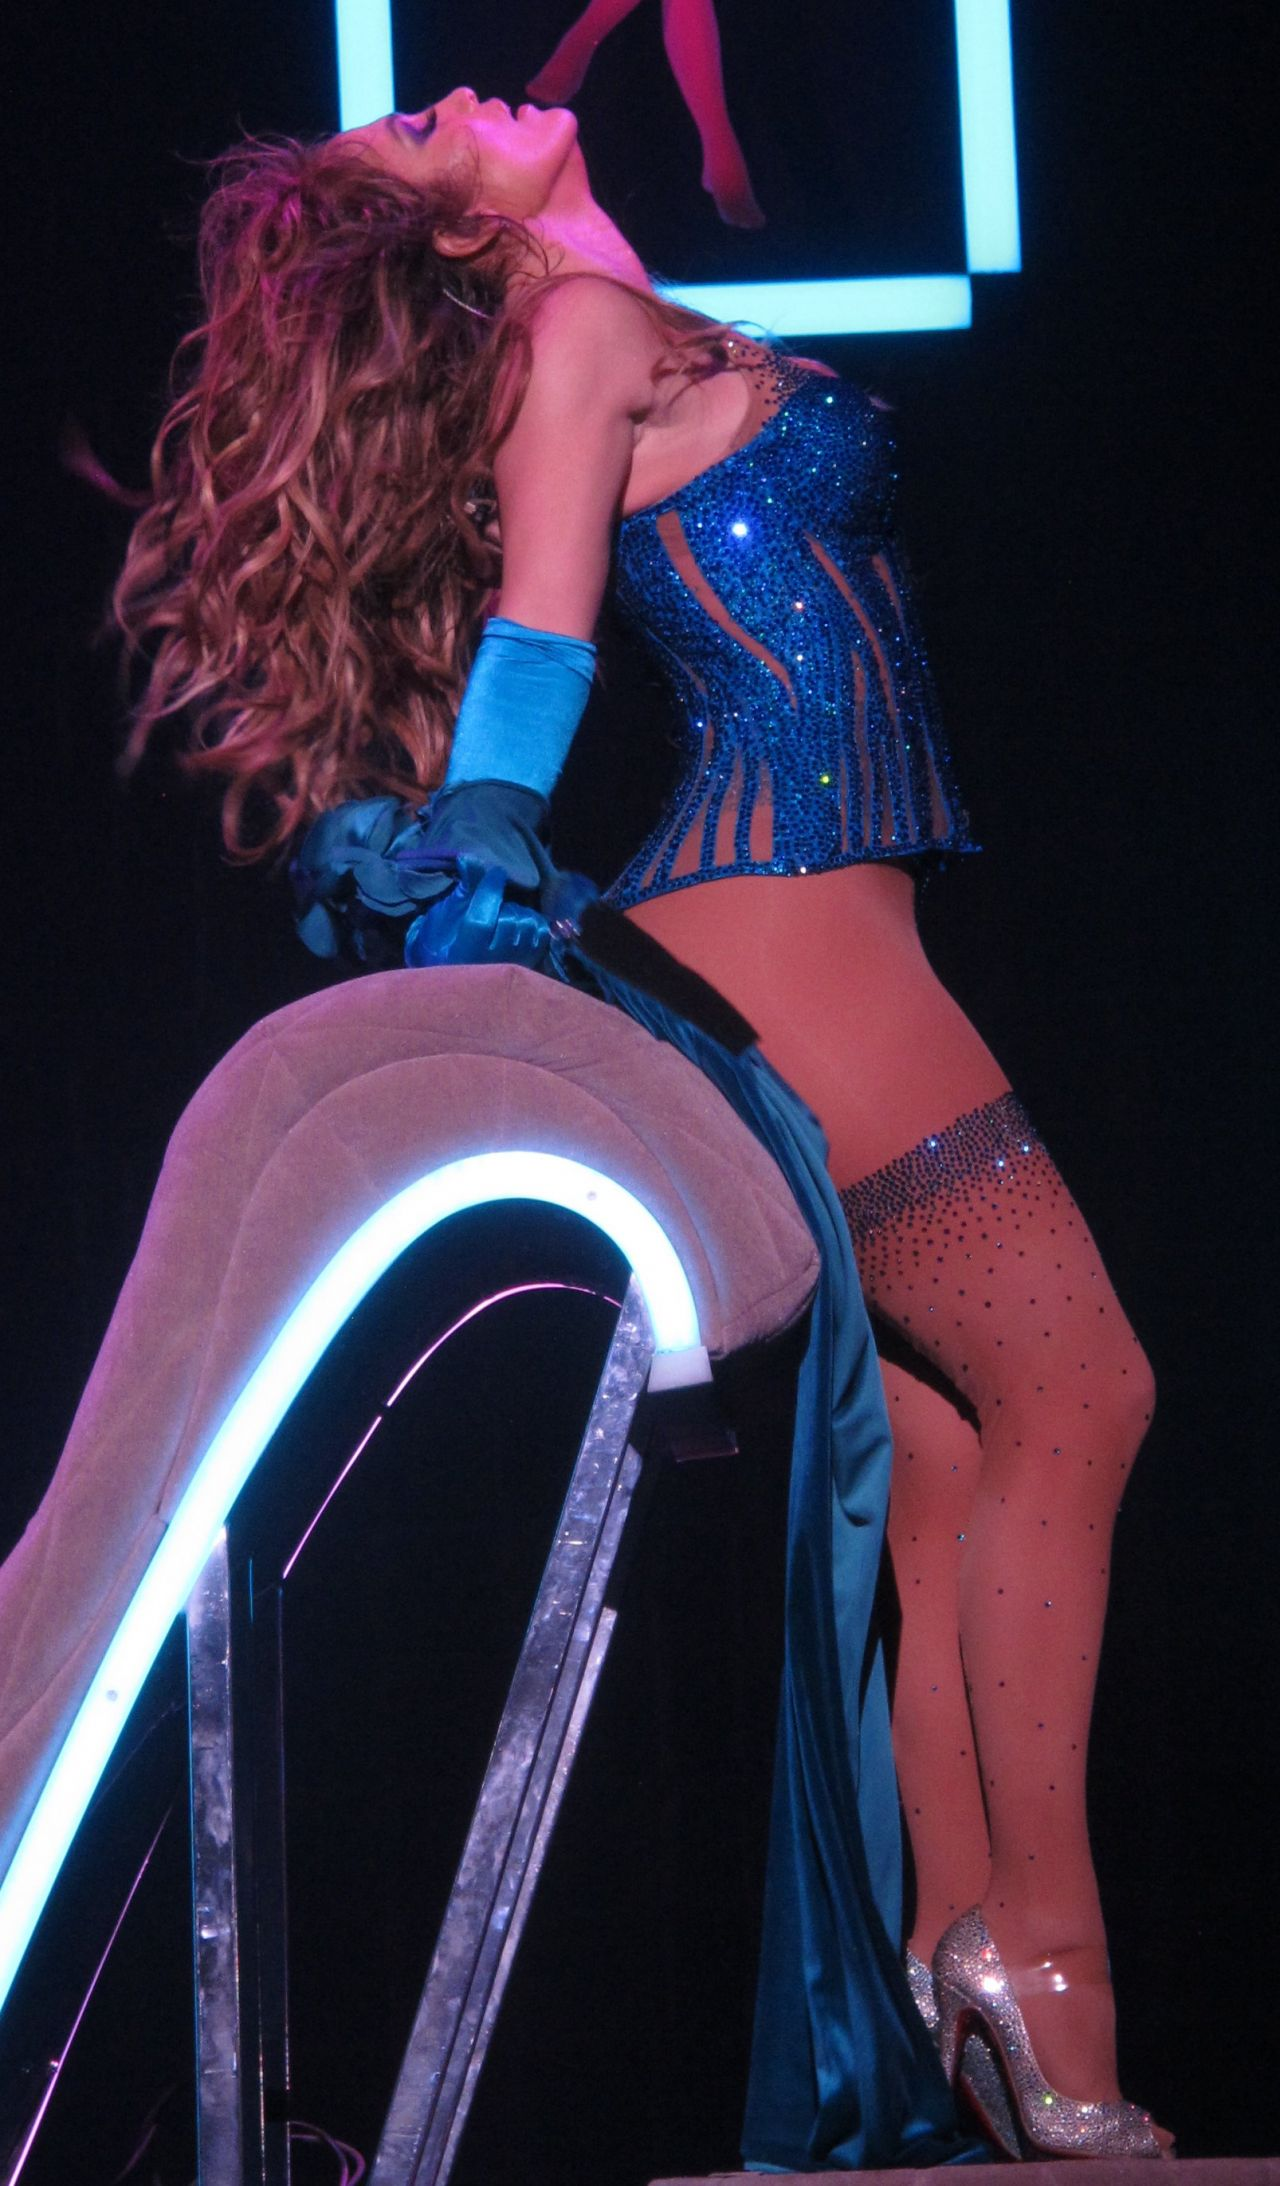 Jennifer Lopez Performs at Opening Night of Her All I Have Residency in Las Vegas January 2016